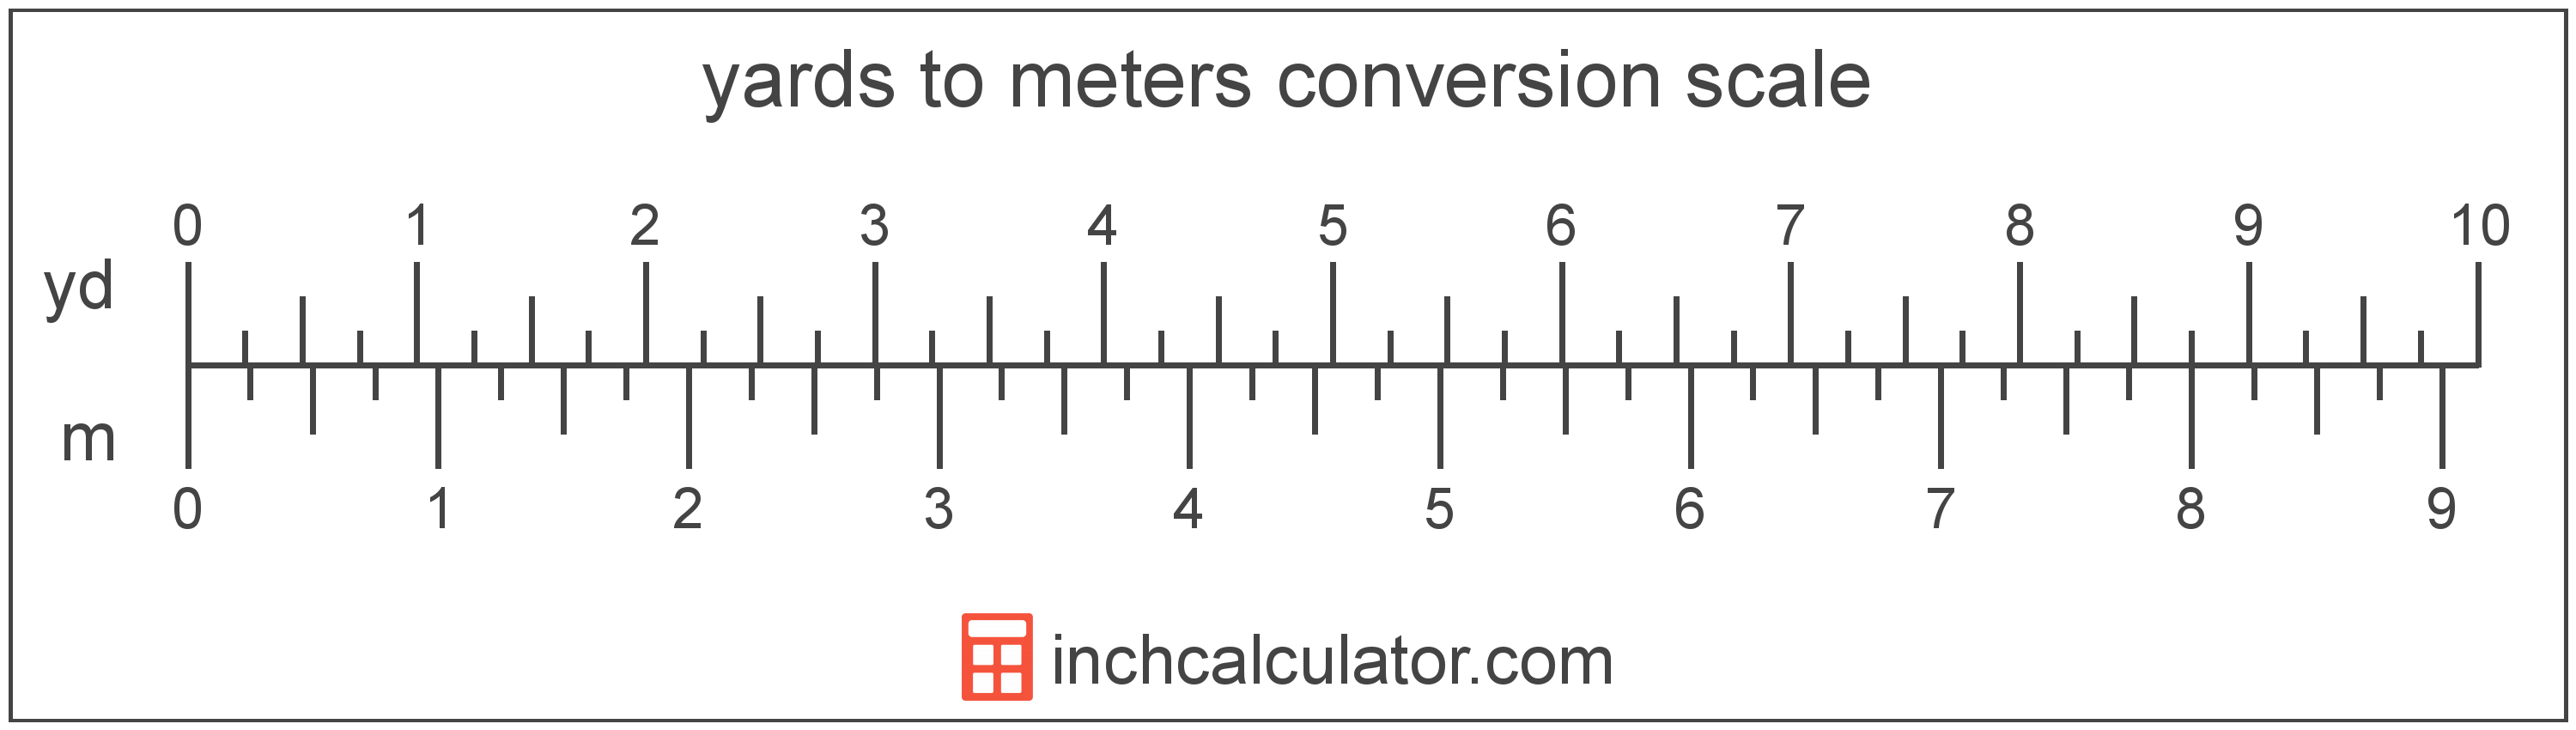 Convert Meters To Yards